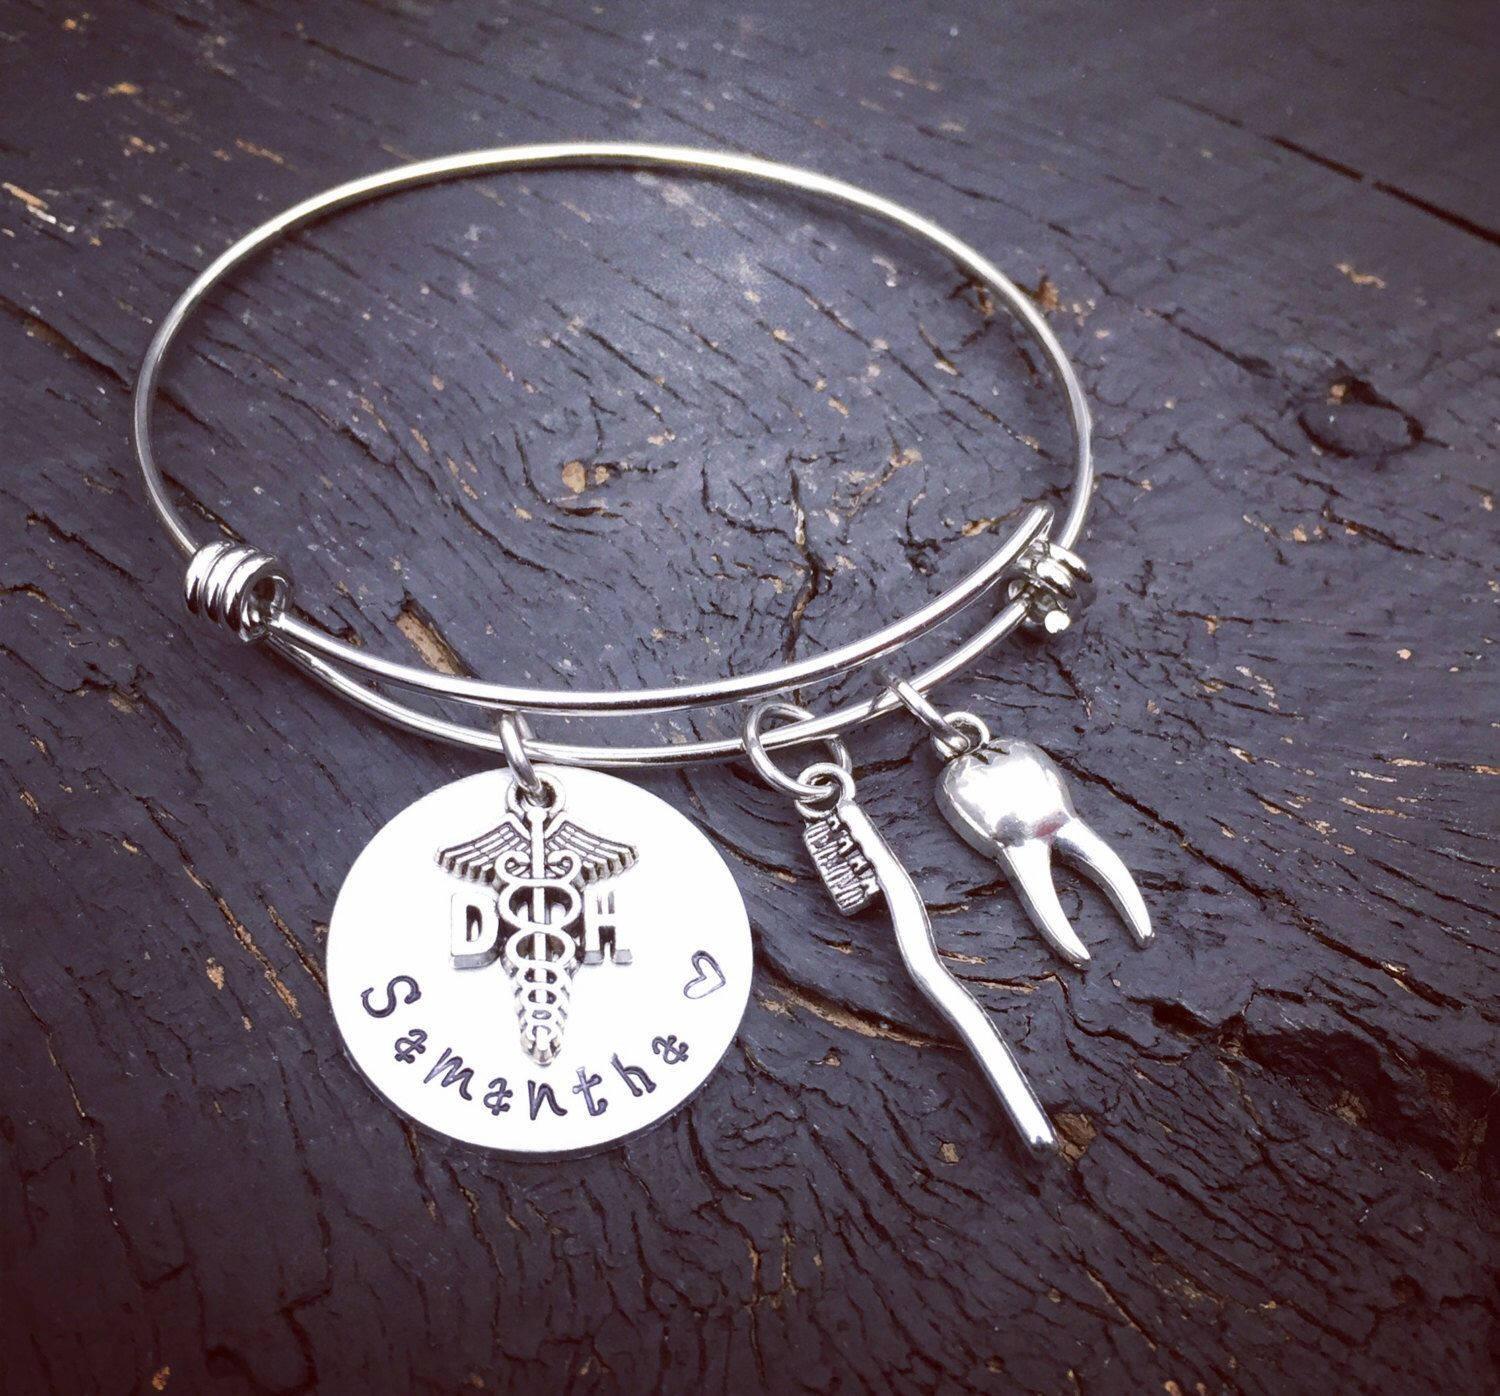 Dental School Graduation Gift Ideas For Her  Pin by Secret Hill Studio on Medical & Awareness Jewelry